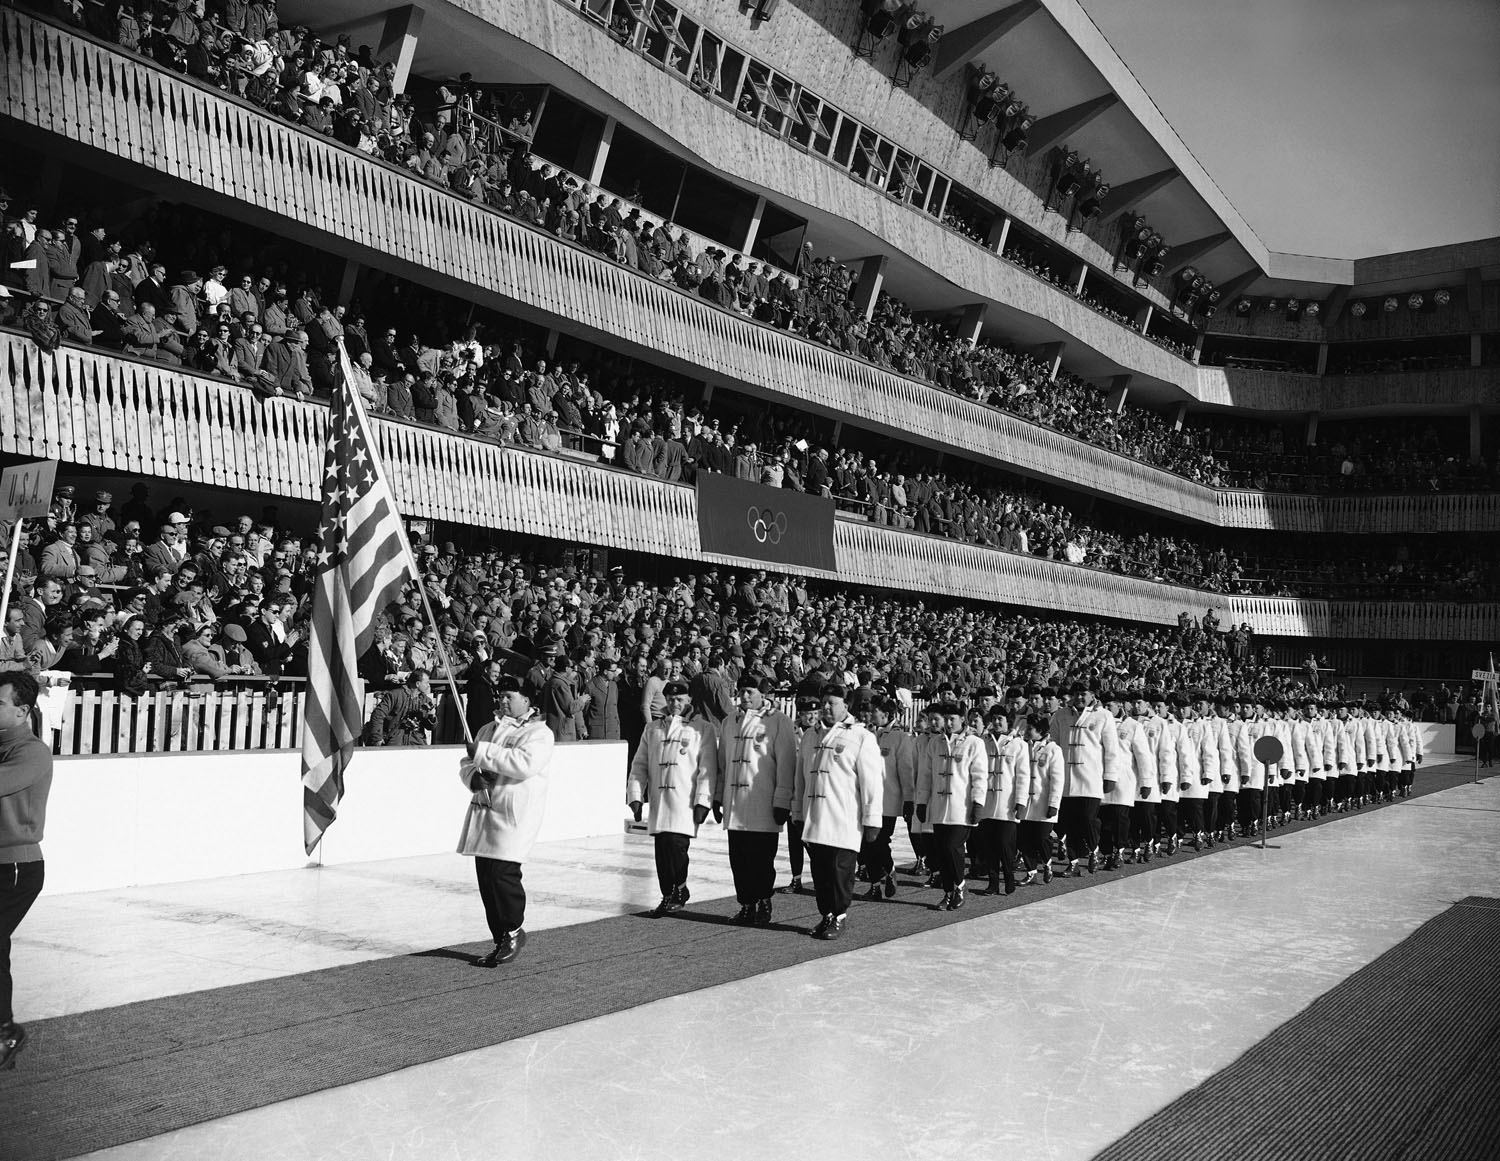 Bobsledder Jim Bickford, carries the U.S. flag again during the opening ceremonies for the 1956 Winter Olympic Games in Cortina D'Ampezzo, Italy.